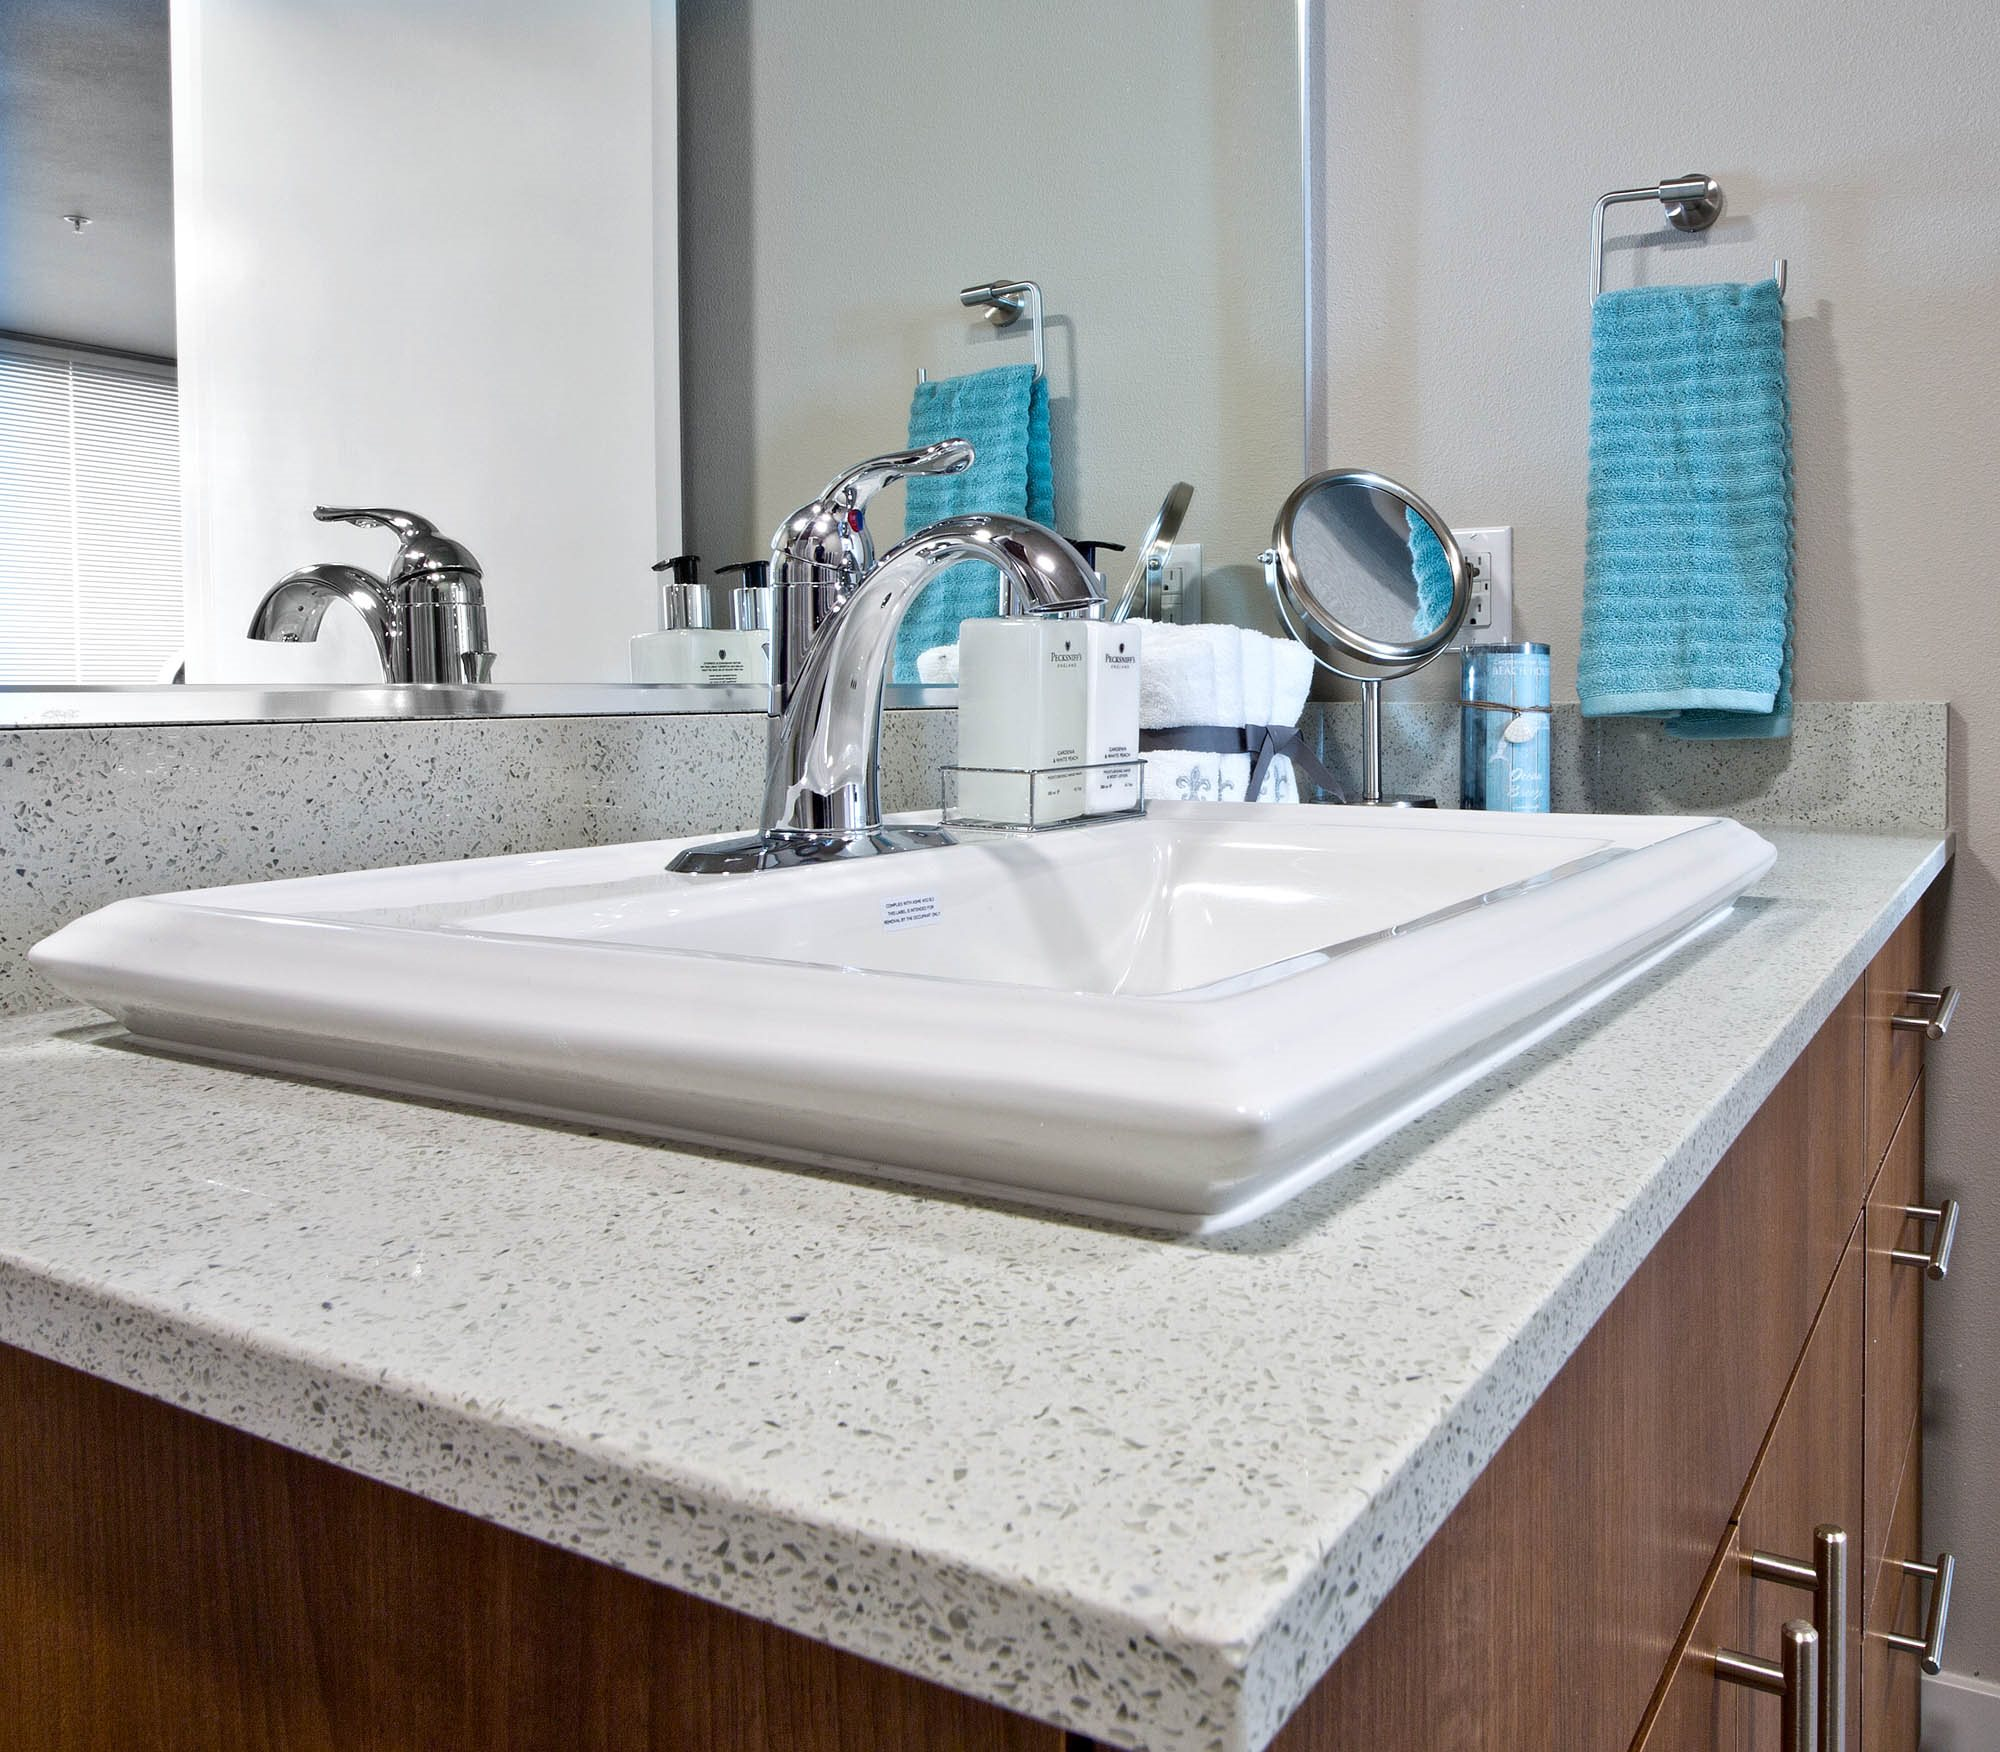 Designer Granite Countertops in all Bathrooms at Astro Apartments, Seattle, WA,98109